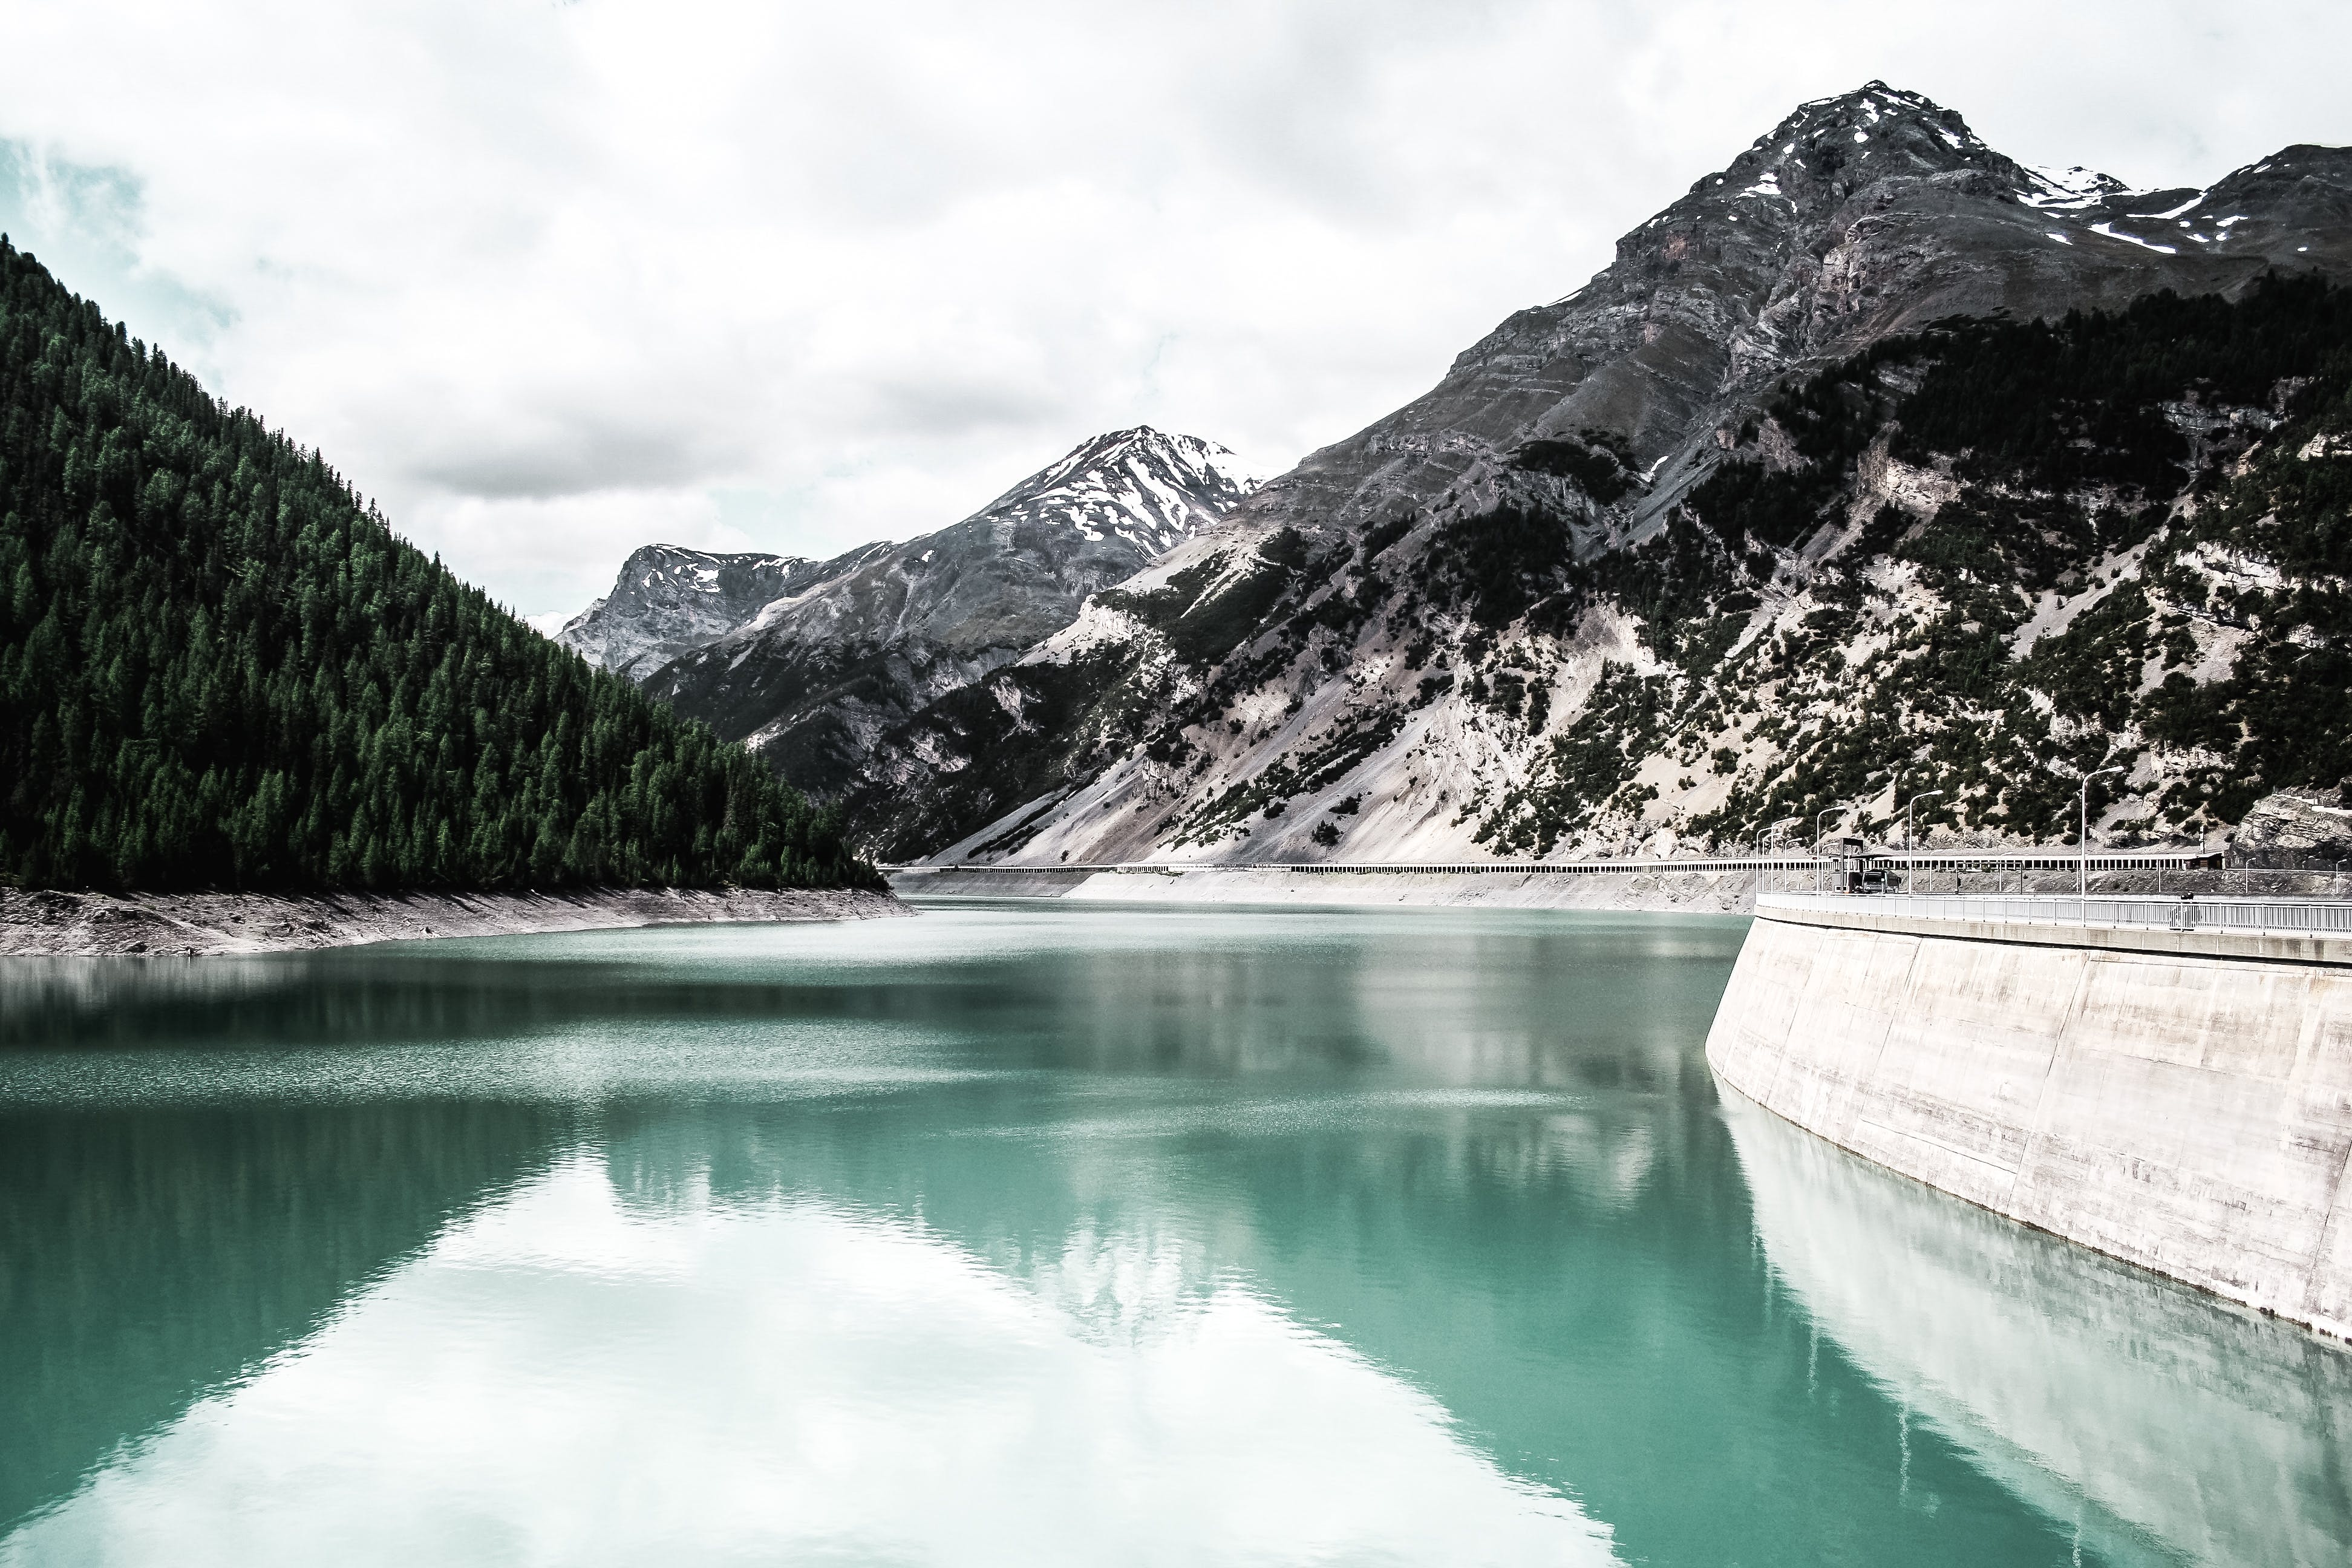 Landscape Photography of Body of Water Near Mountain